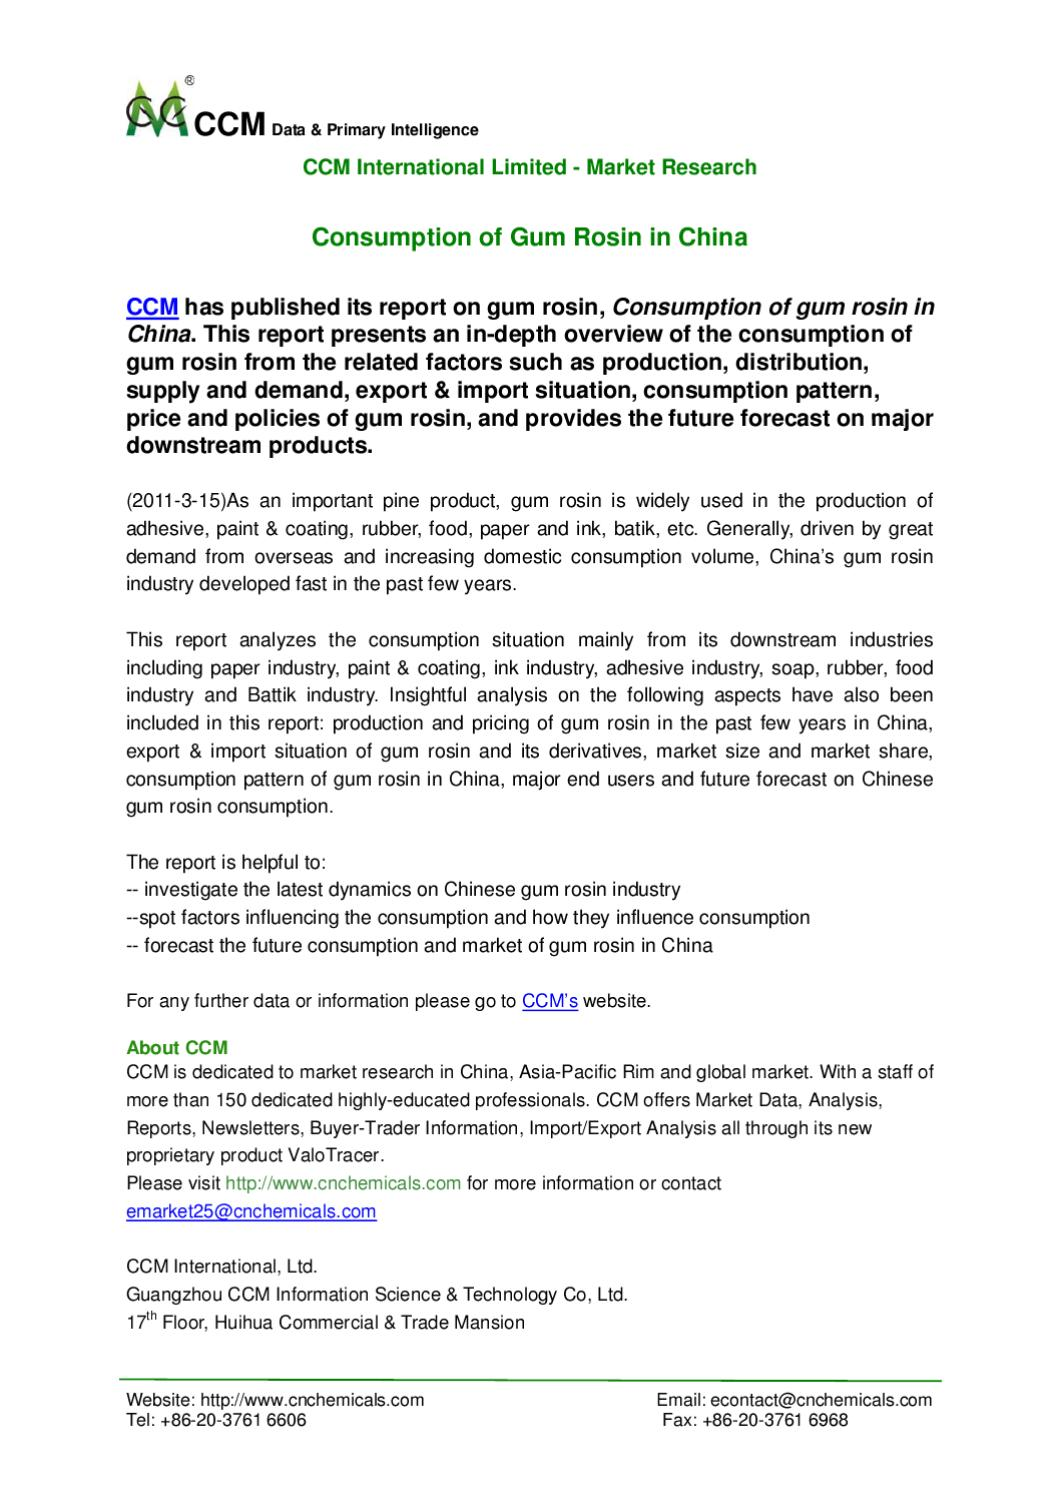 Press Release - Consumption of Gum Rosin in China by Guangzhou CCM